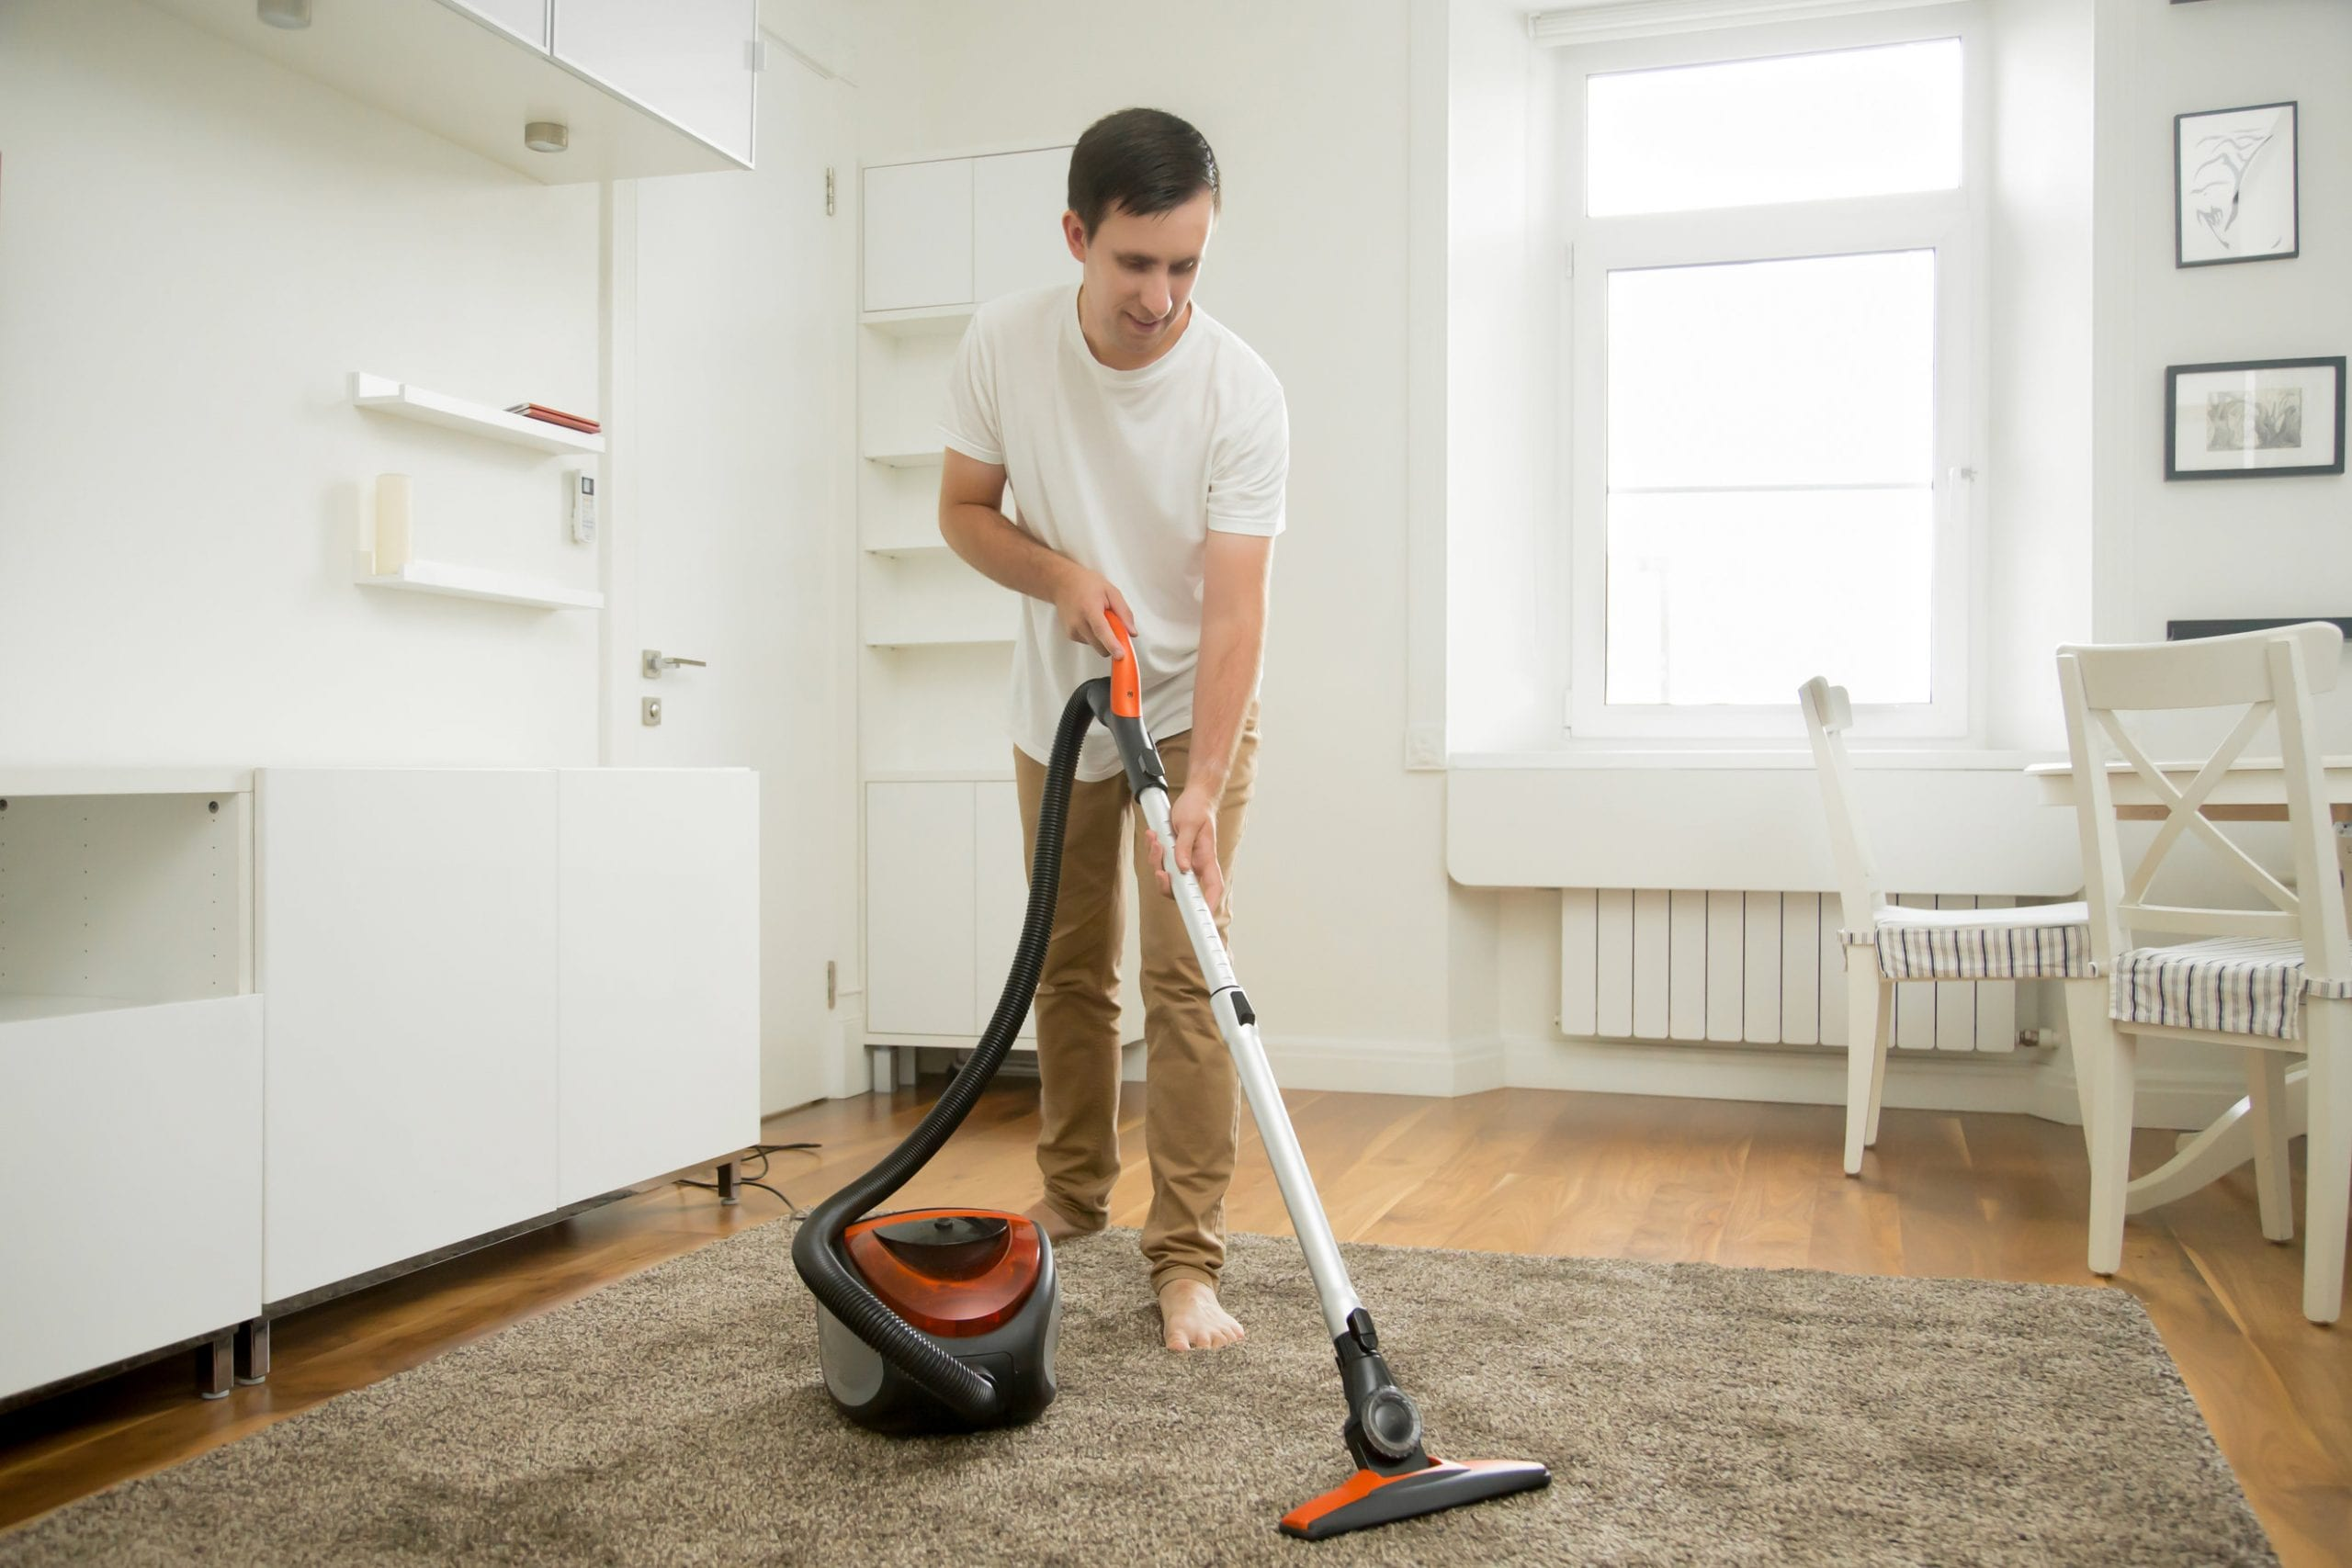 Happy smiling man vacuum cleaning the carpet in the living room, modern scandinavian interior. Busy, cleaning day. Home, housekeeping concept.